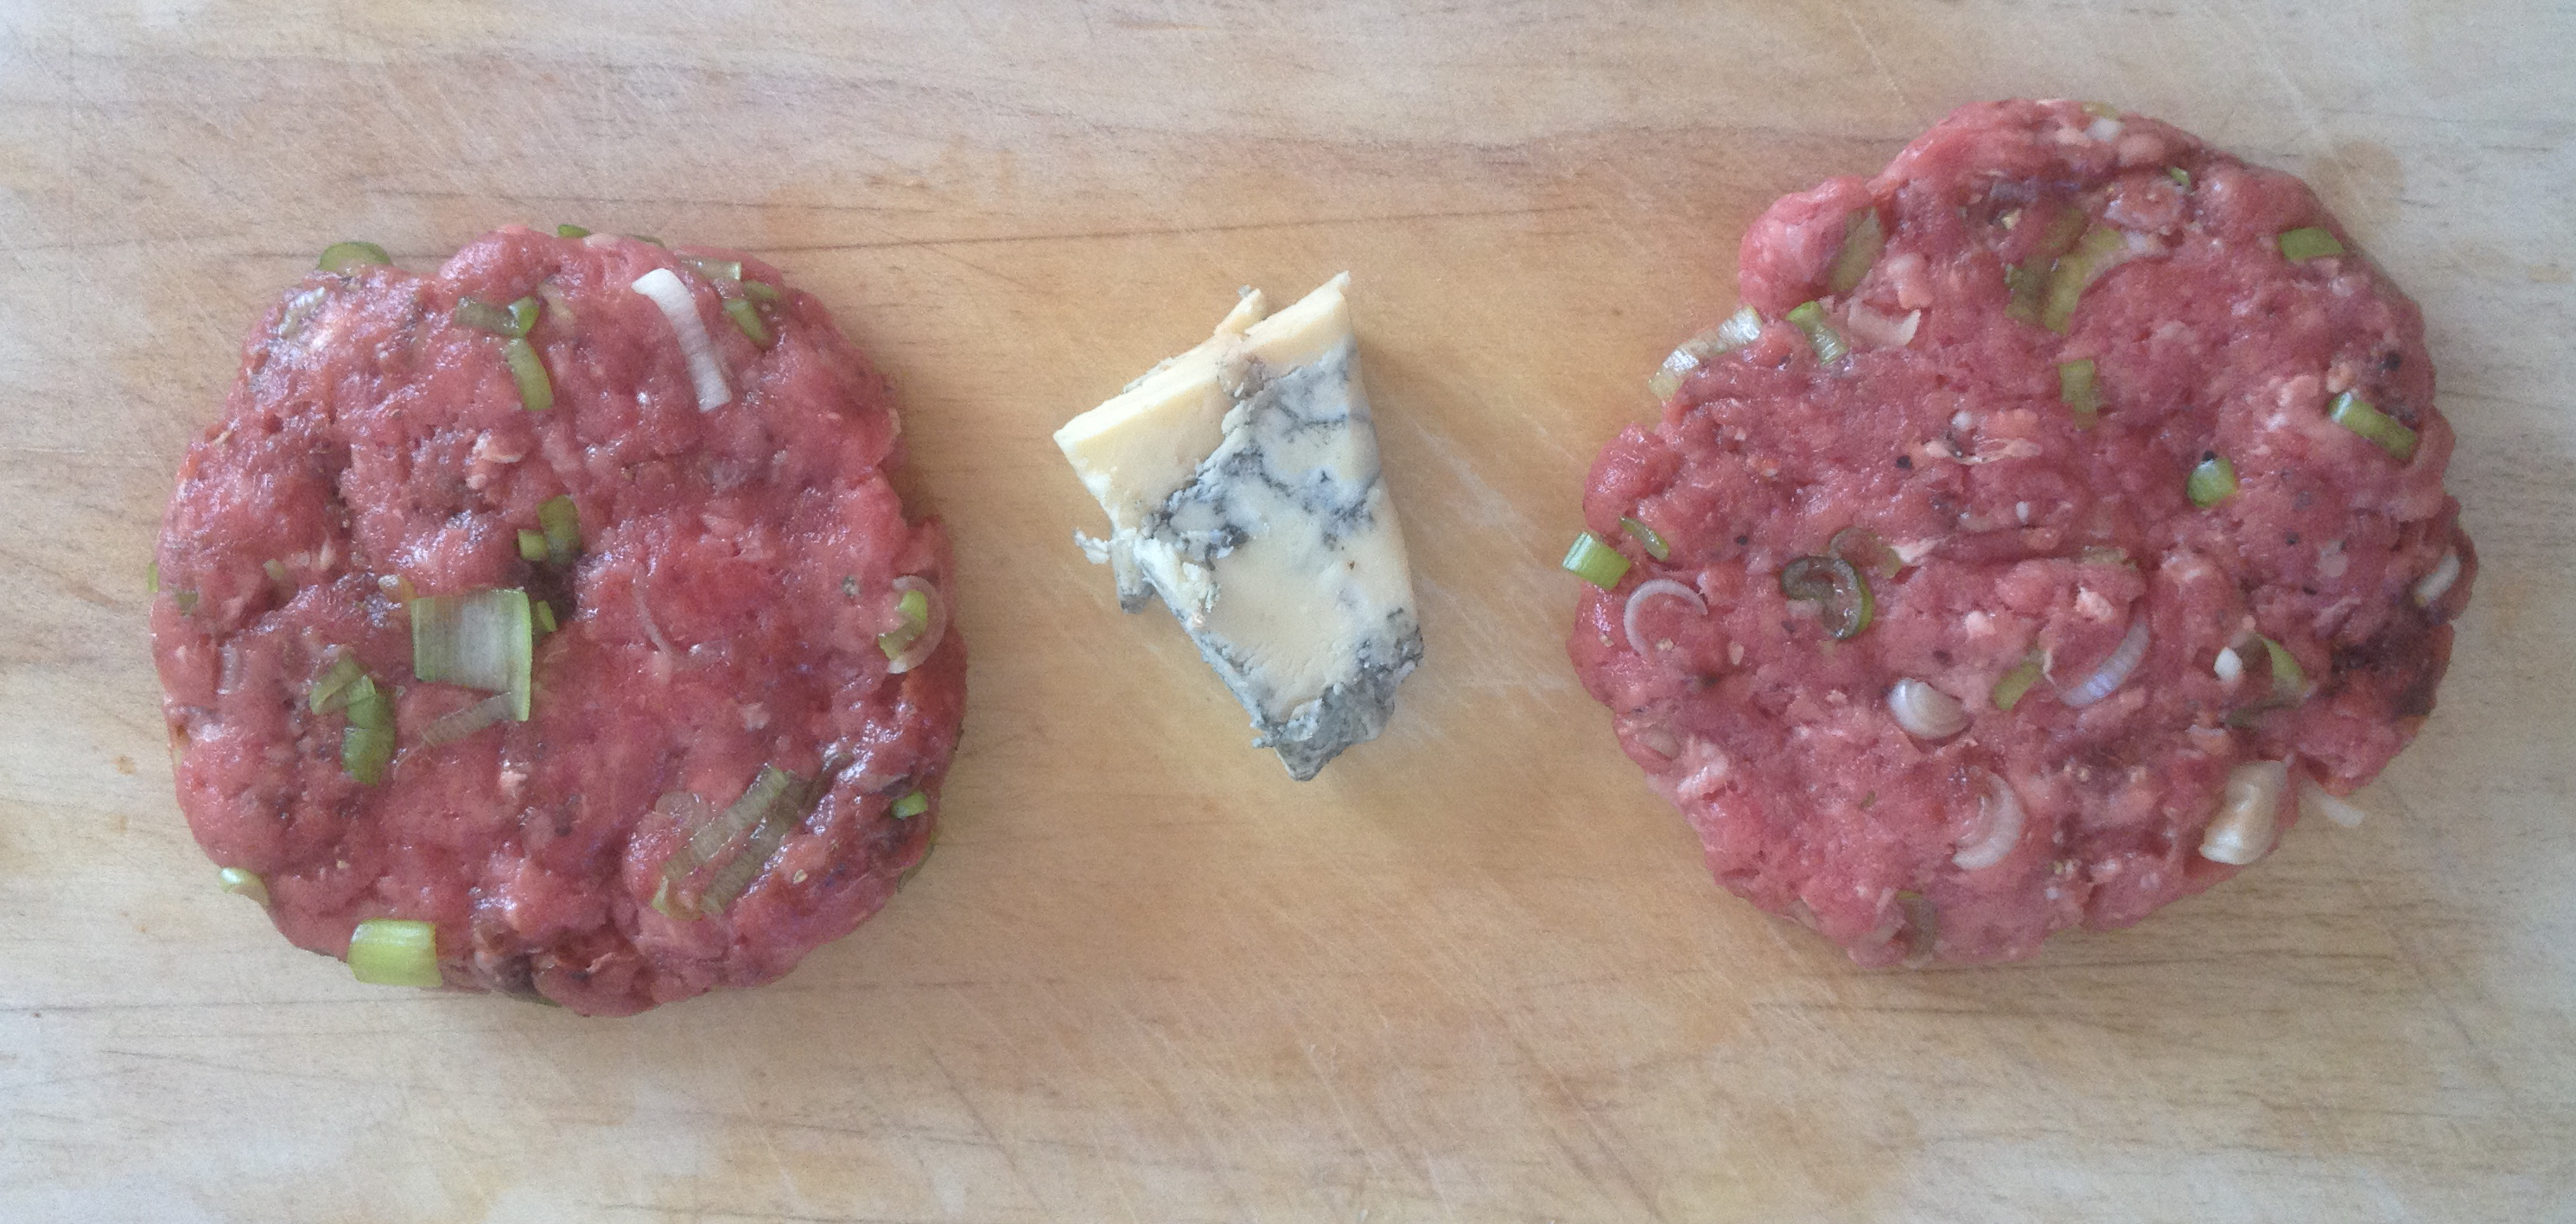 2. Make two thin burgers, place half the stilton between them and mould into one big fat burger.